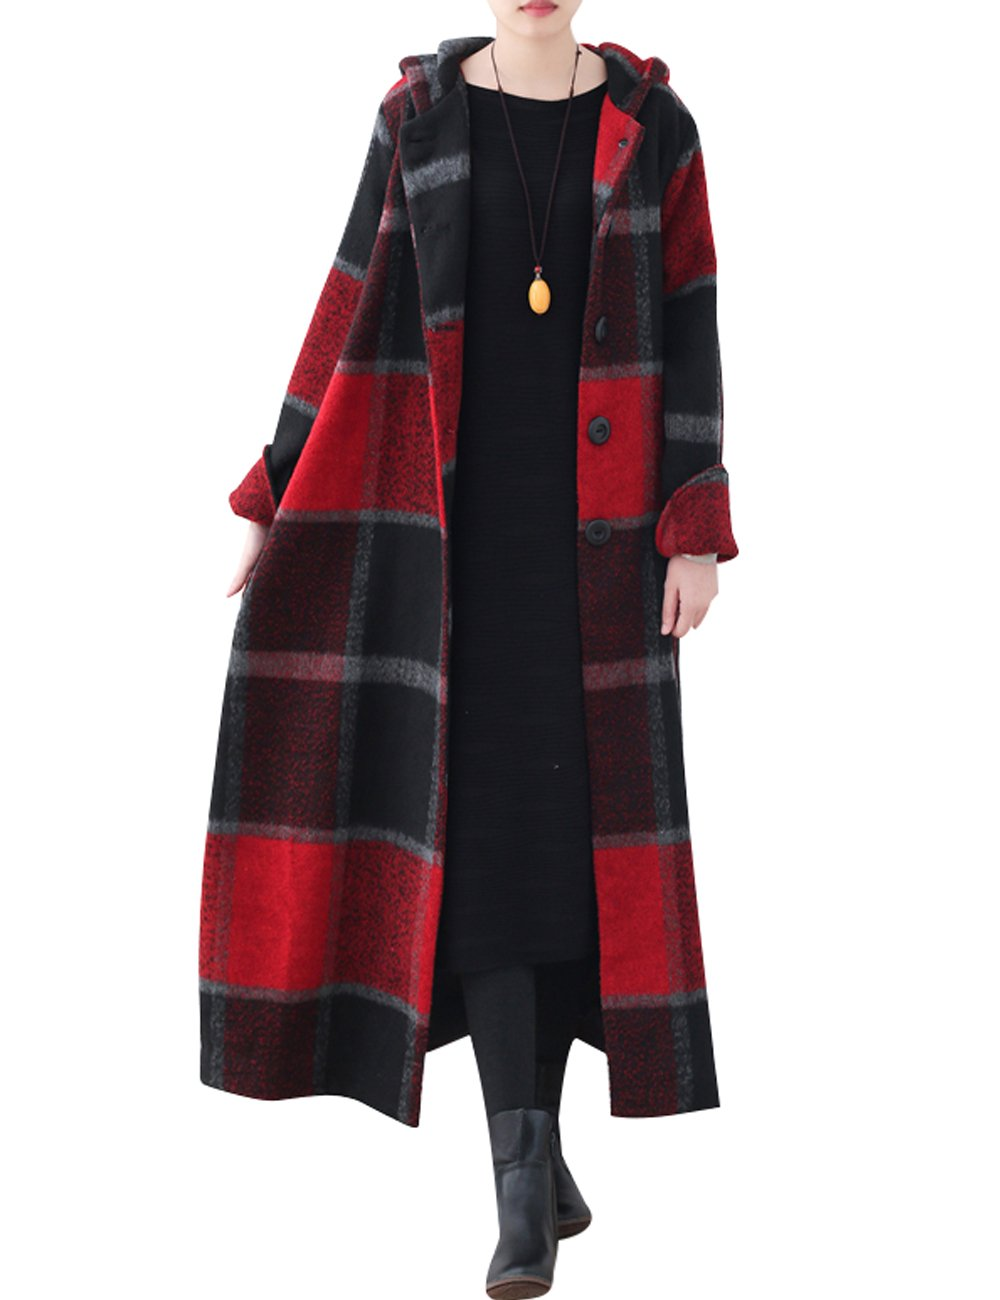 Zoulee Women's Winter New Long Wool Coat Lattice Trench Coat With Hooded Style 1 Red